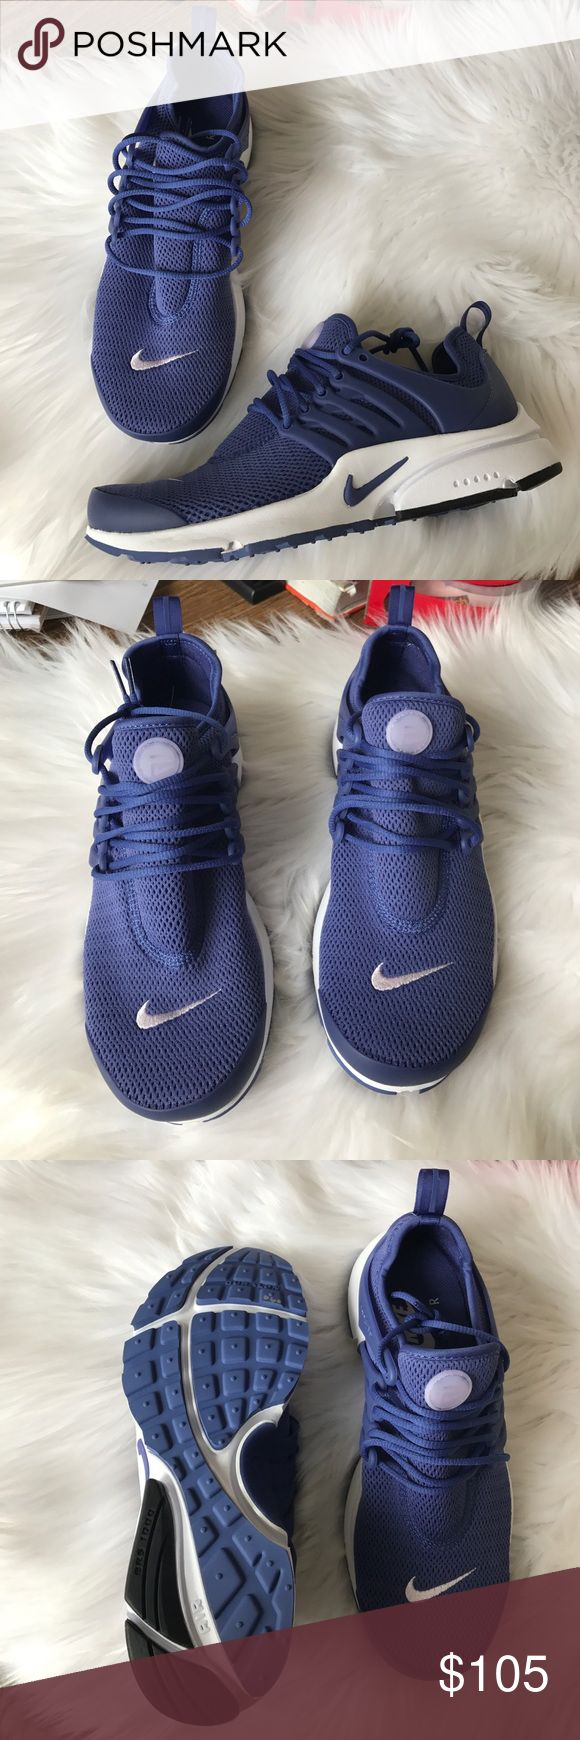 Nike Air Presto Sneakers Woman's Nike Air Presto sneakers Style: 846290-502 Dark purple and white New with original box Size 8  -060 on bottom sole of right sneaker Nike Shoes Sneakers